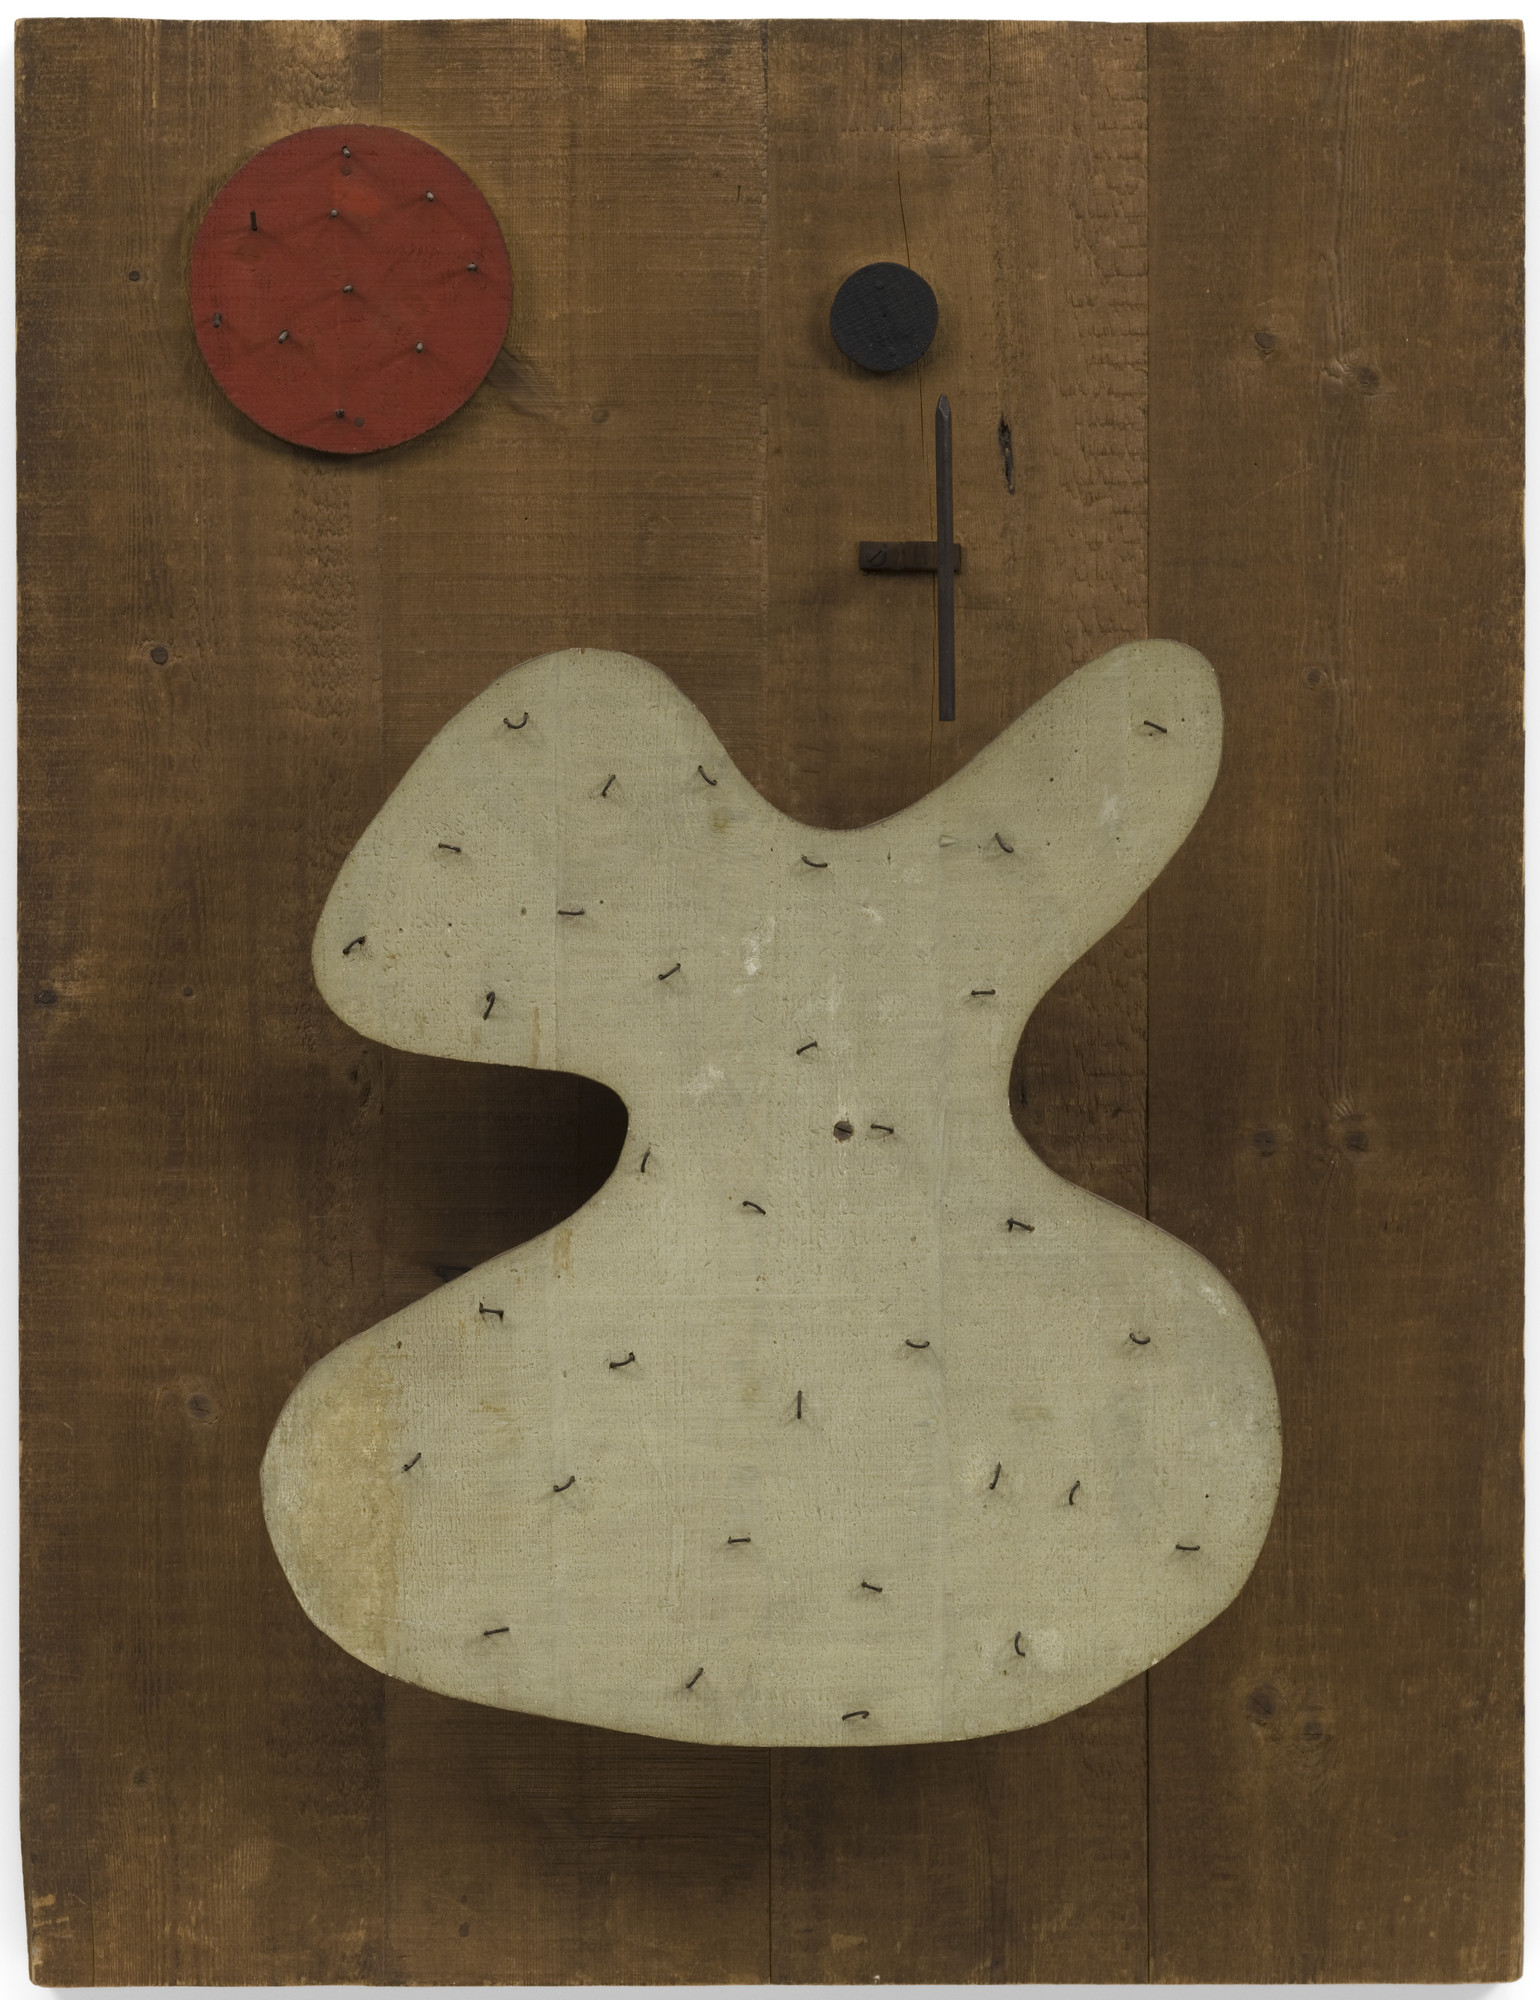 Joan Miró. Relief Construction. Montroig, August-November 1930